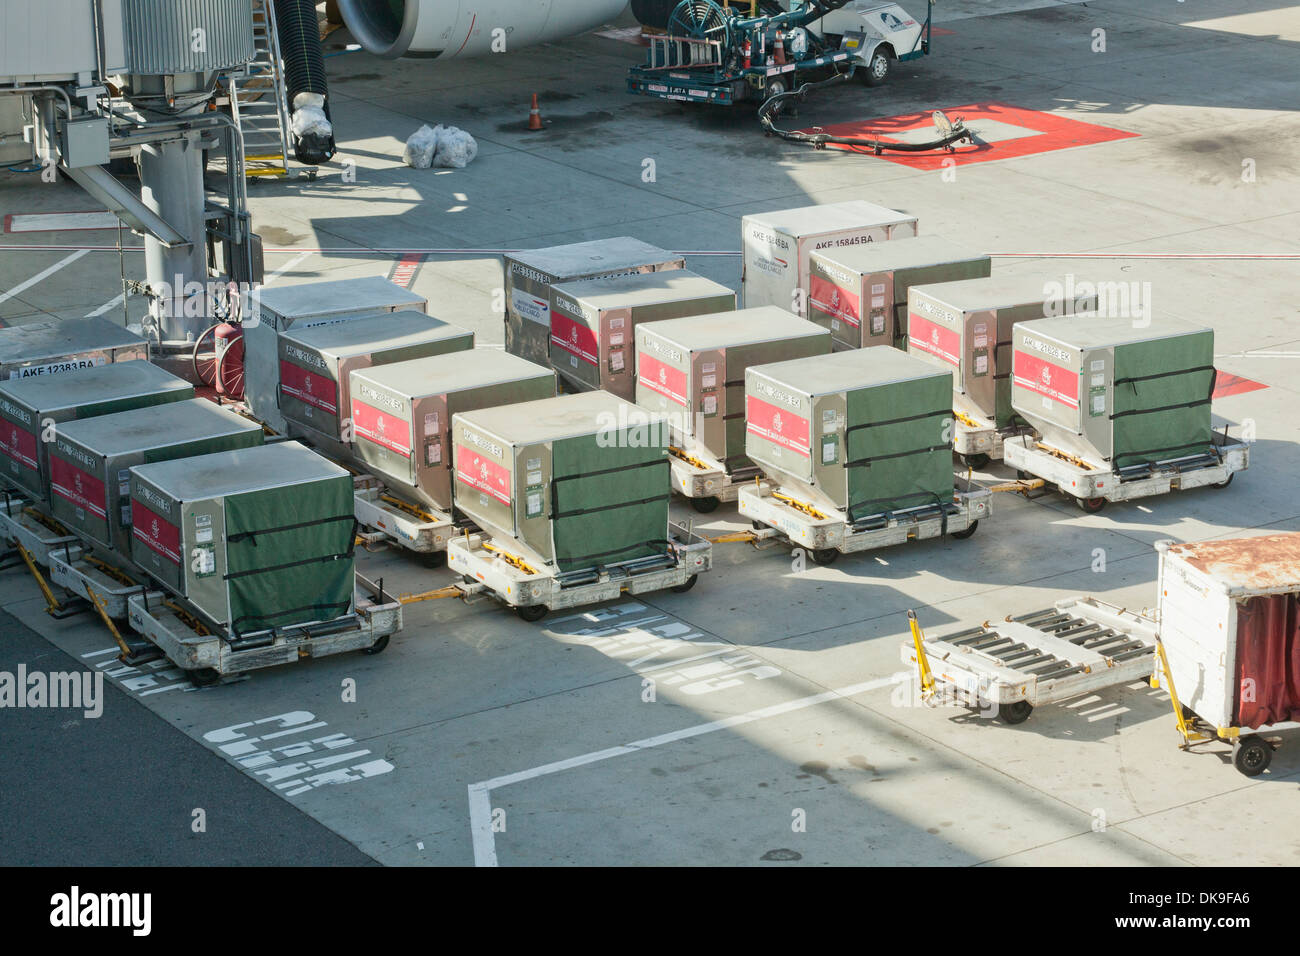 Commercial Airline Unit Load Device Uld Containers At